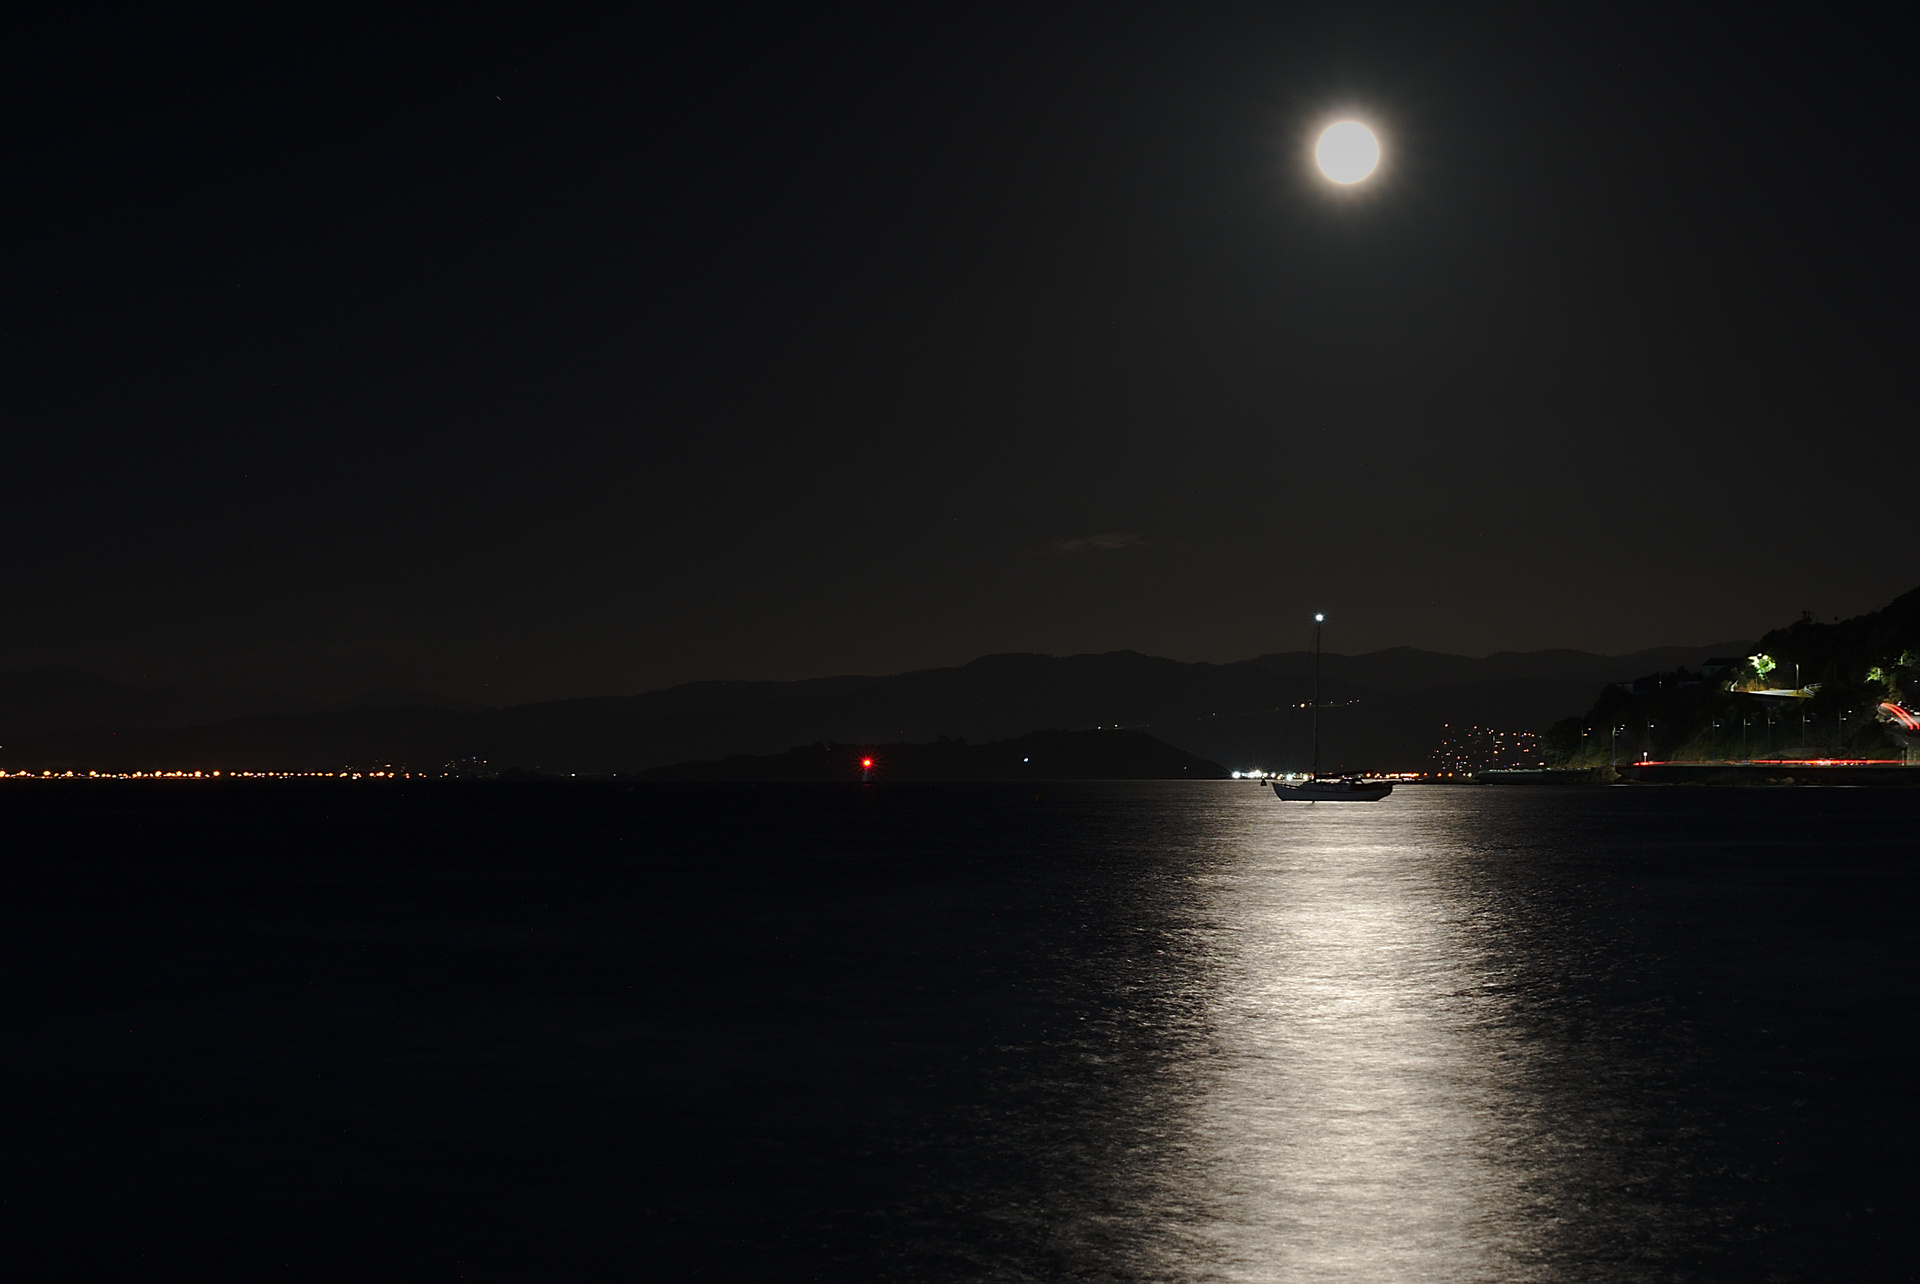 Later that night at Oriental Bay